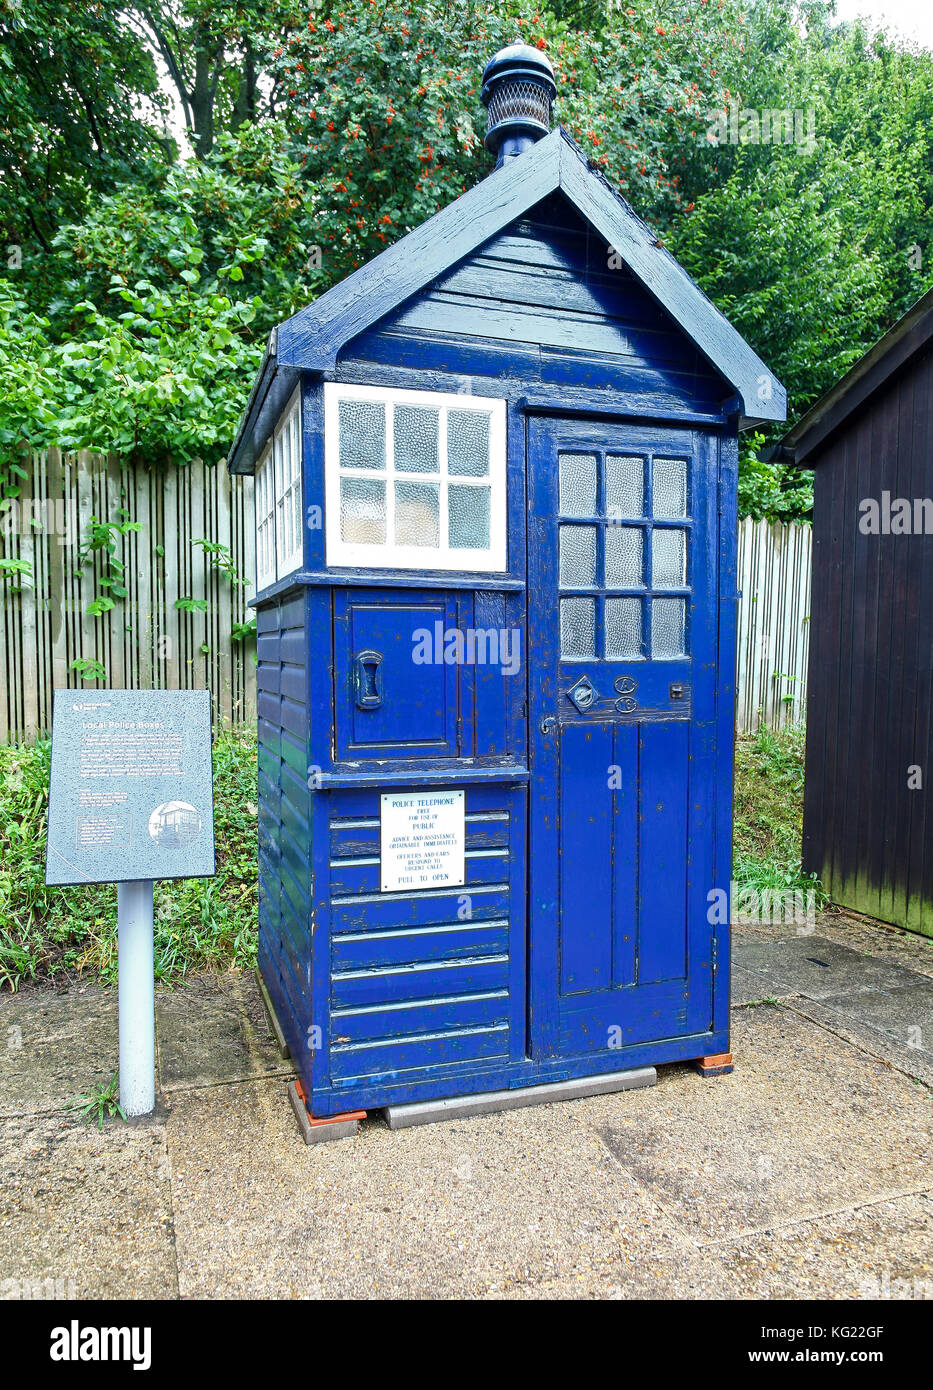 A Local police call box at The National Telephone Kiosk Collection at the Avoncroft Museum of Buildings, Bromsgrove, - Stock Image